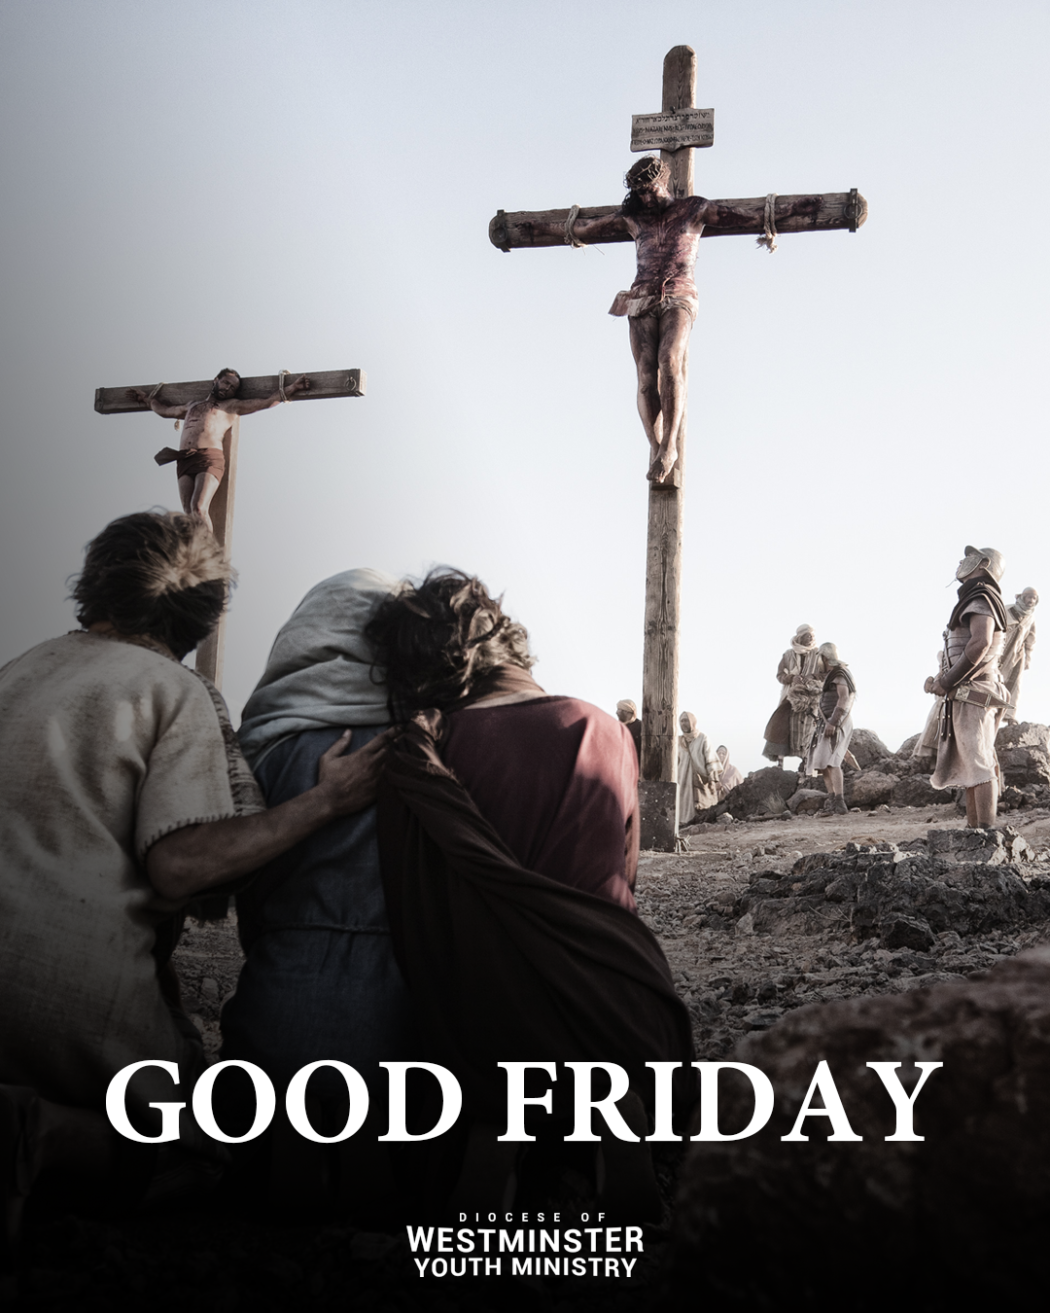 Good Friday when Jesus Christ was crucified